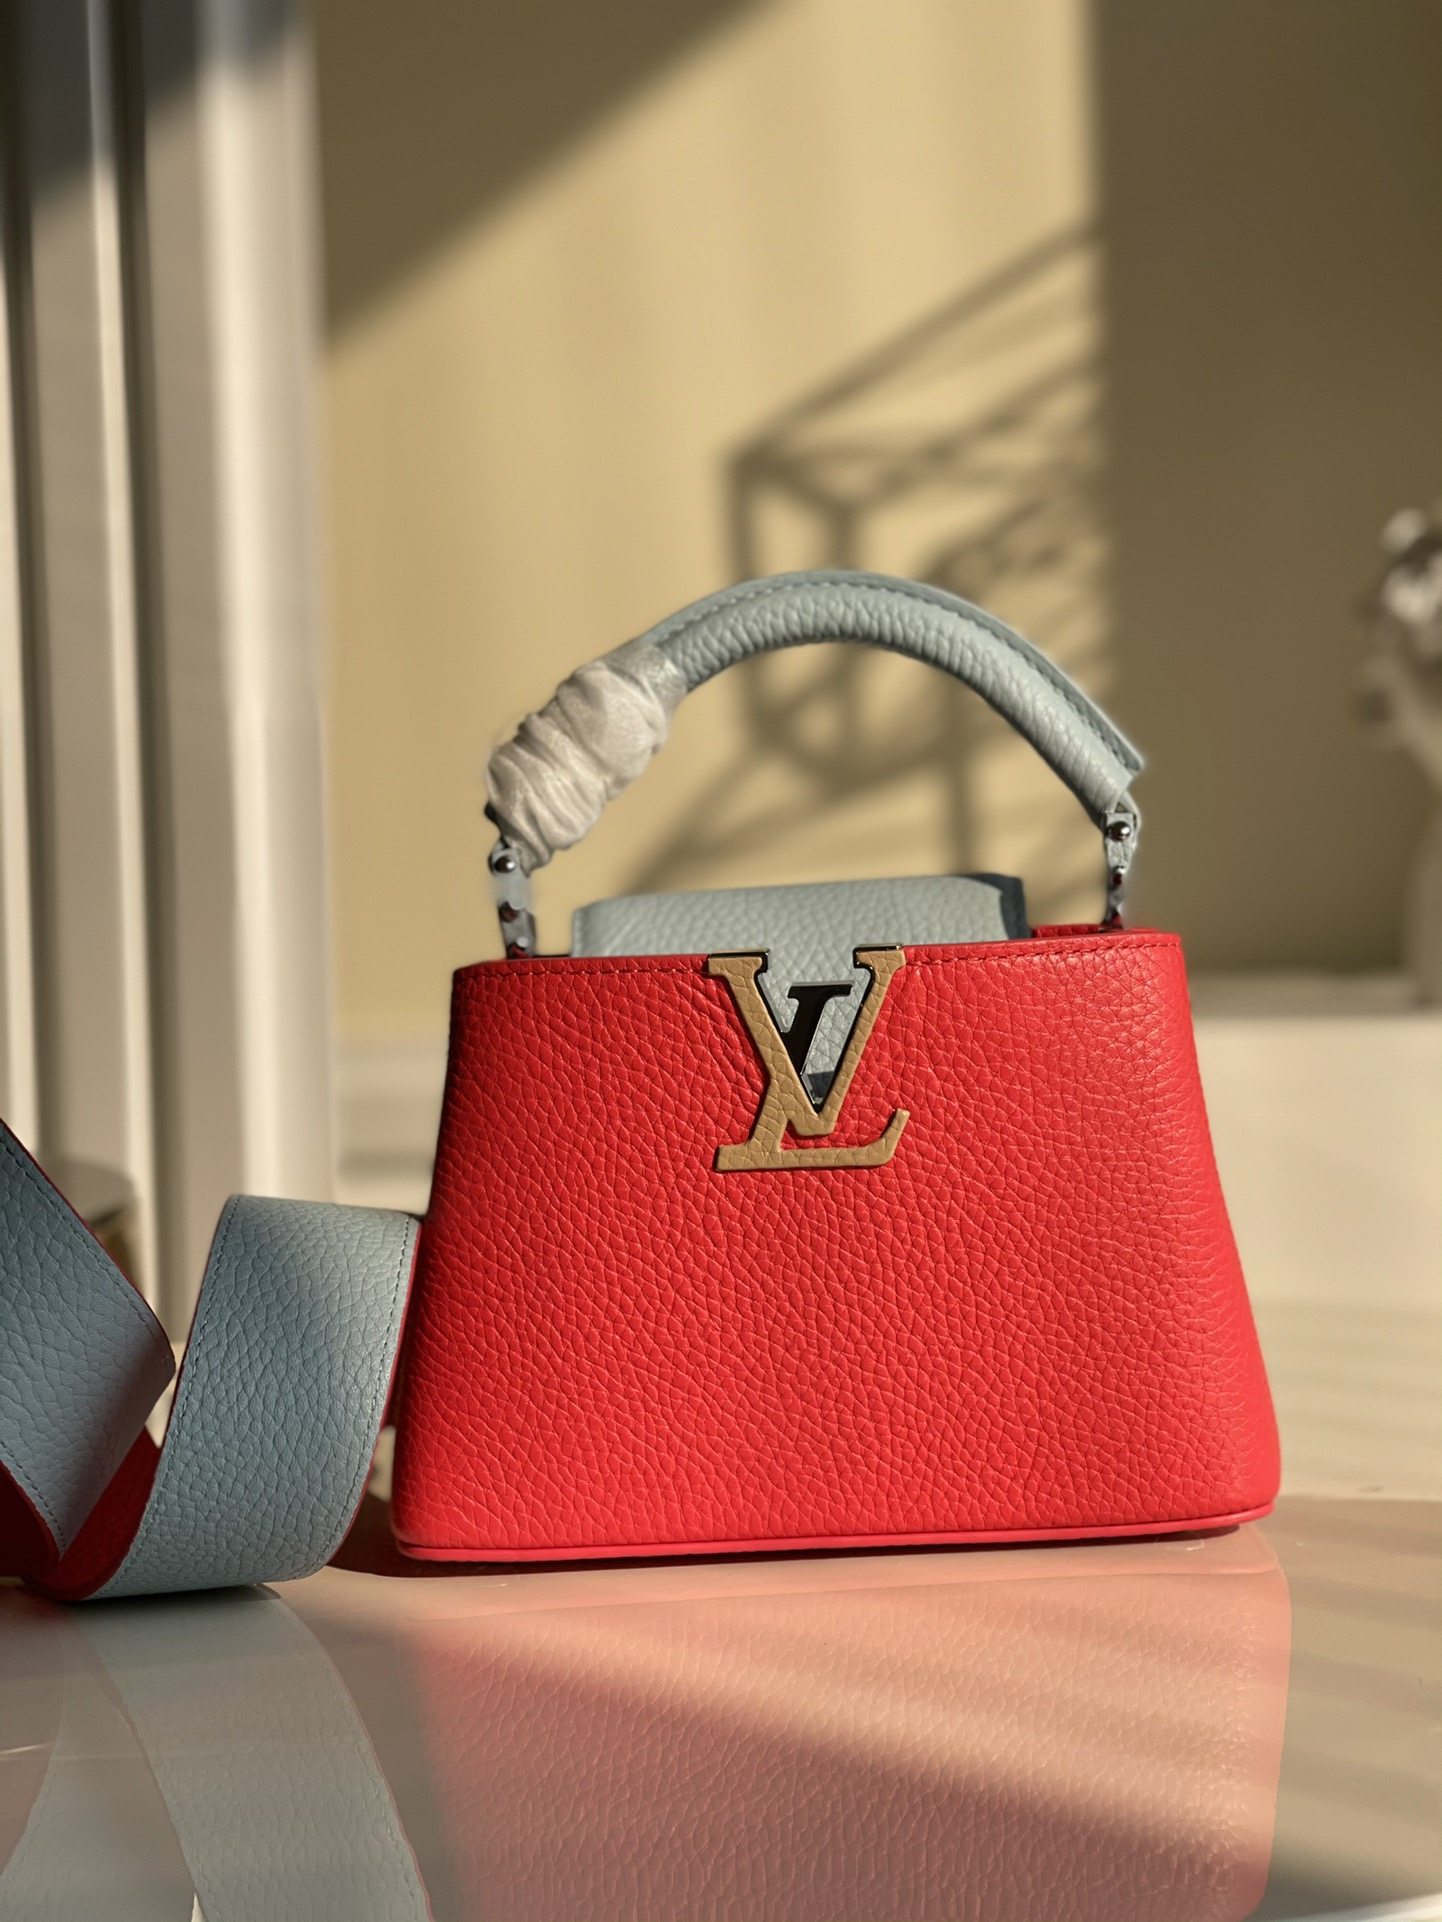 Replica Louis Vuitton M57520 Capucines Mini Handbag Coral Greige Beige Olympe Blue Taurillon Leather